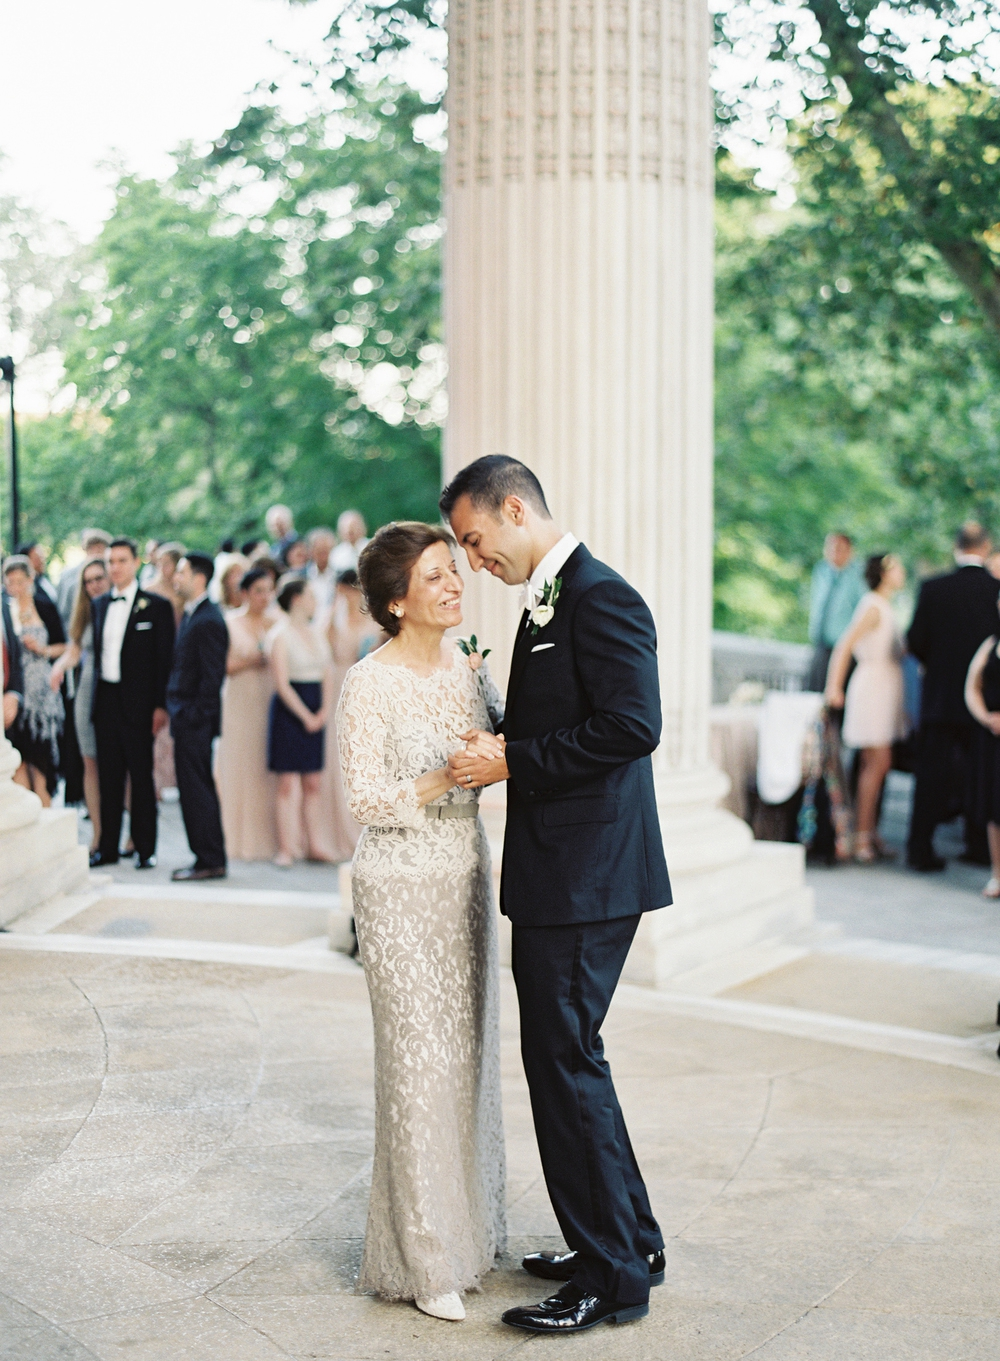 Vicki Grafton Photography - Fine Art DC Virginia Charlottesville Film Wedding Photographer_0068.jpg